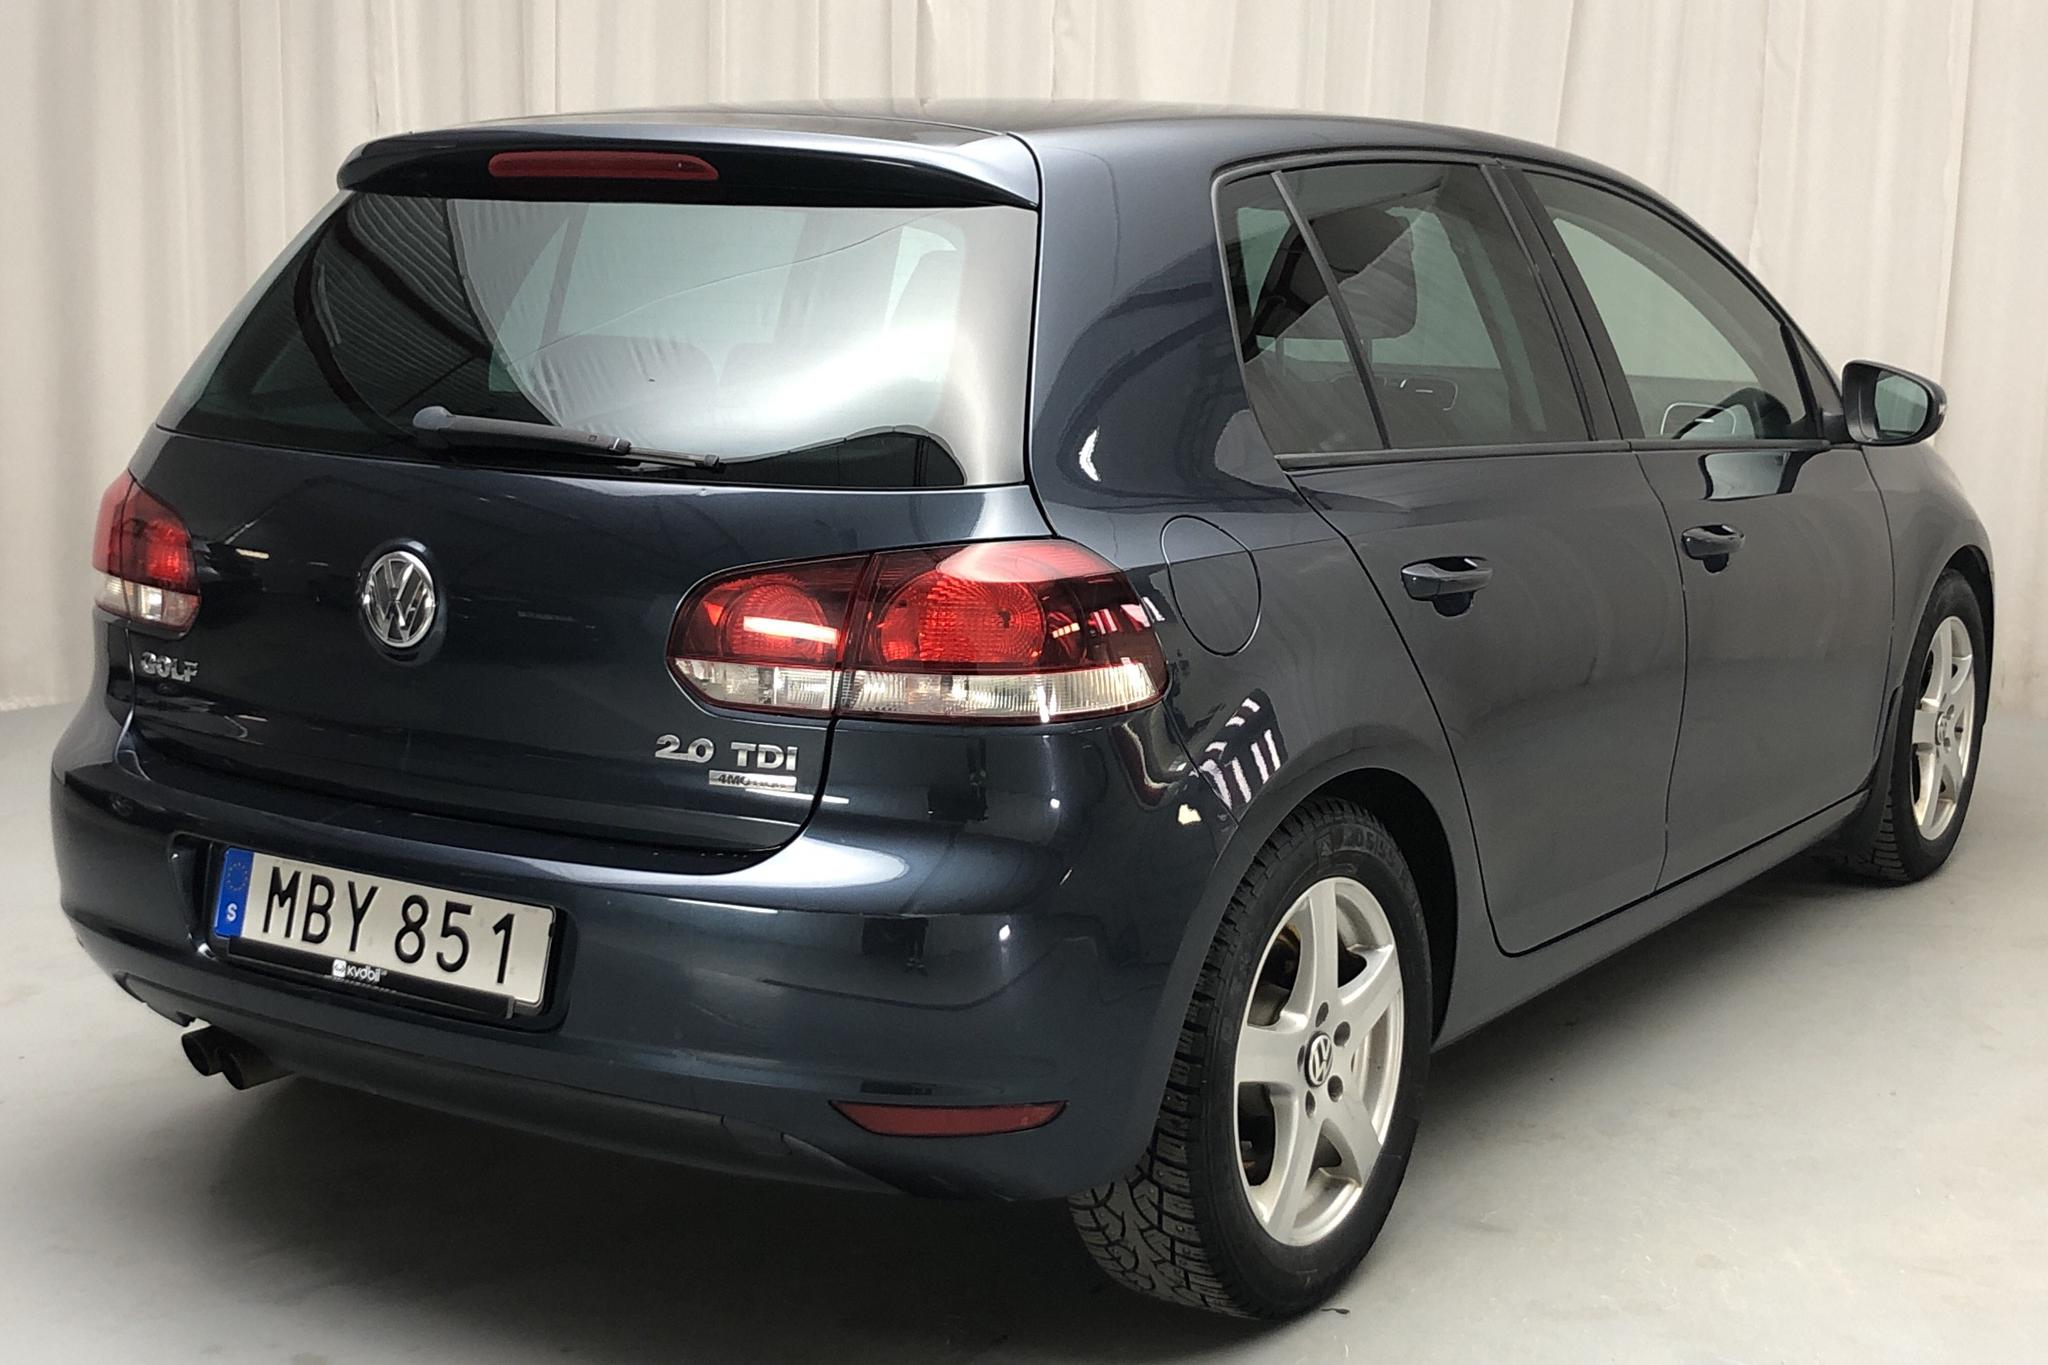 VW Golf VI GT 2.0 TDI 4Motion 5dr (140hk) - 12 159 mil - Manuell - Dark Grey - 2012